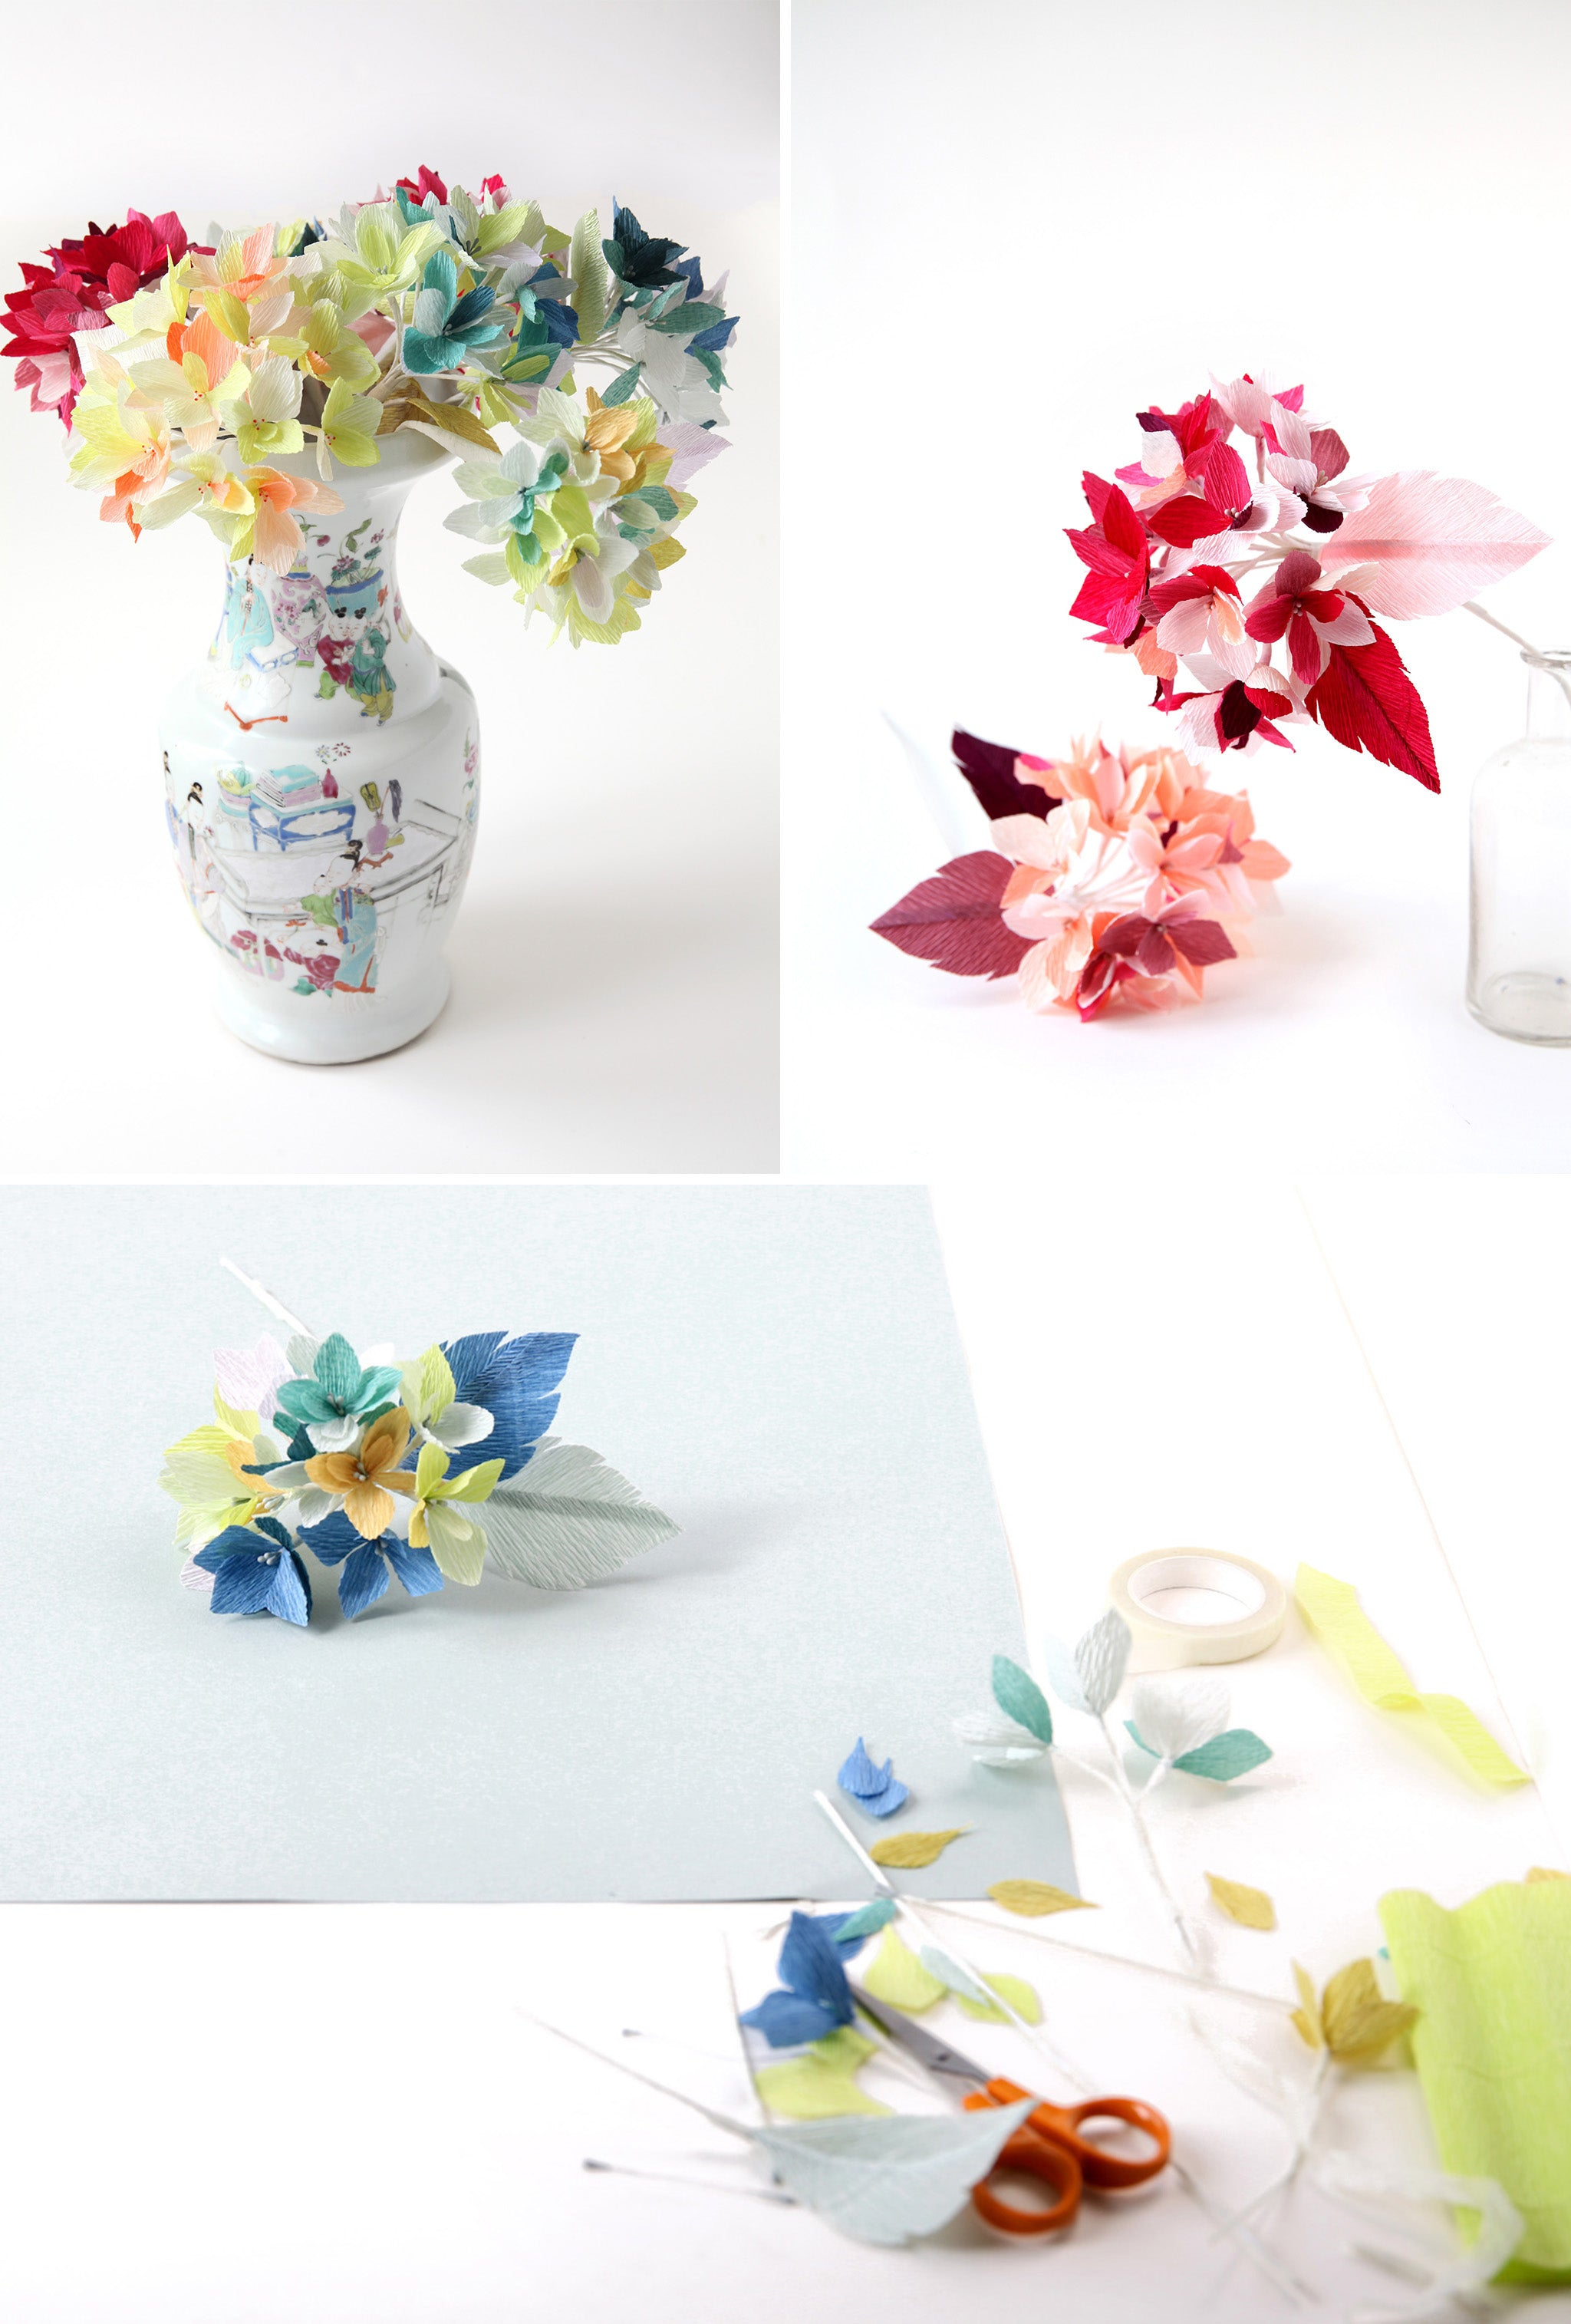 article-blog-hortensia-japon-ambiance-1